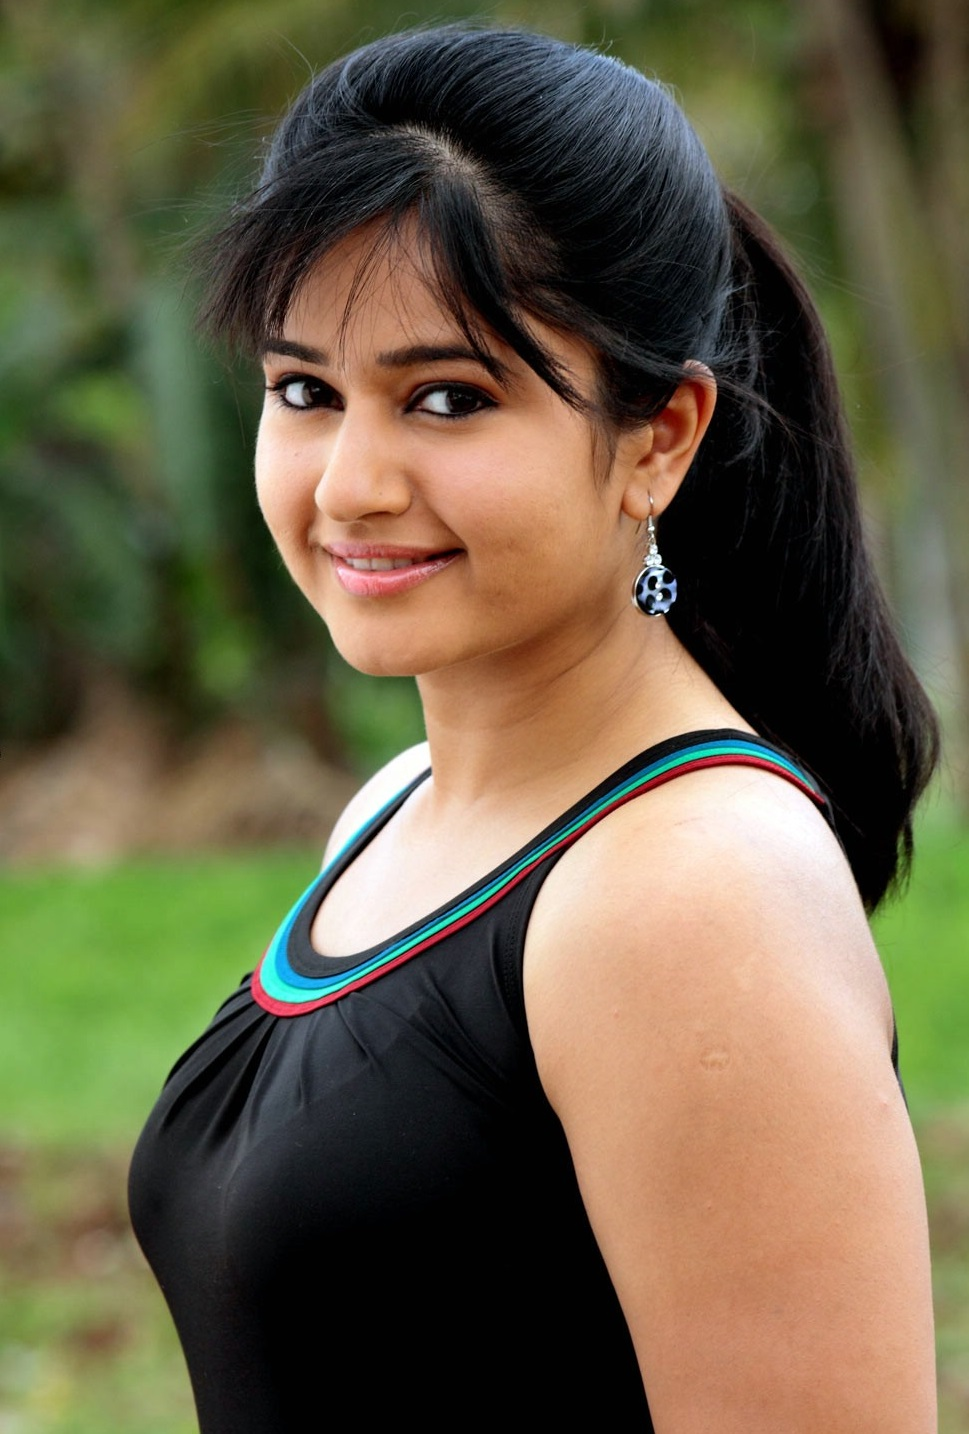 poonam bajwa topless images, photos and wallpapers | welcomenri